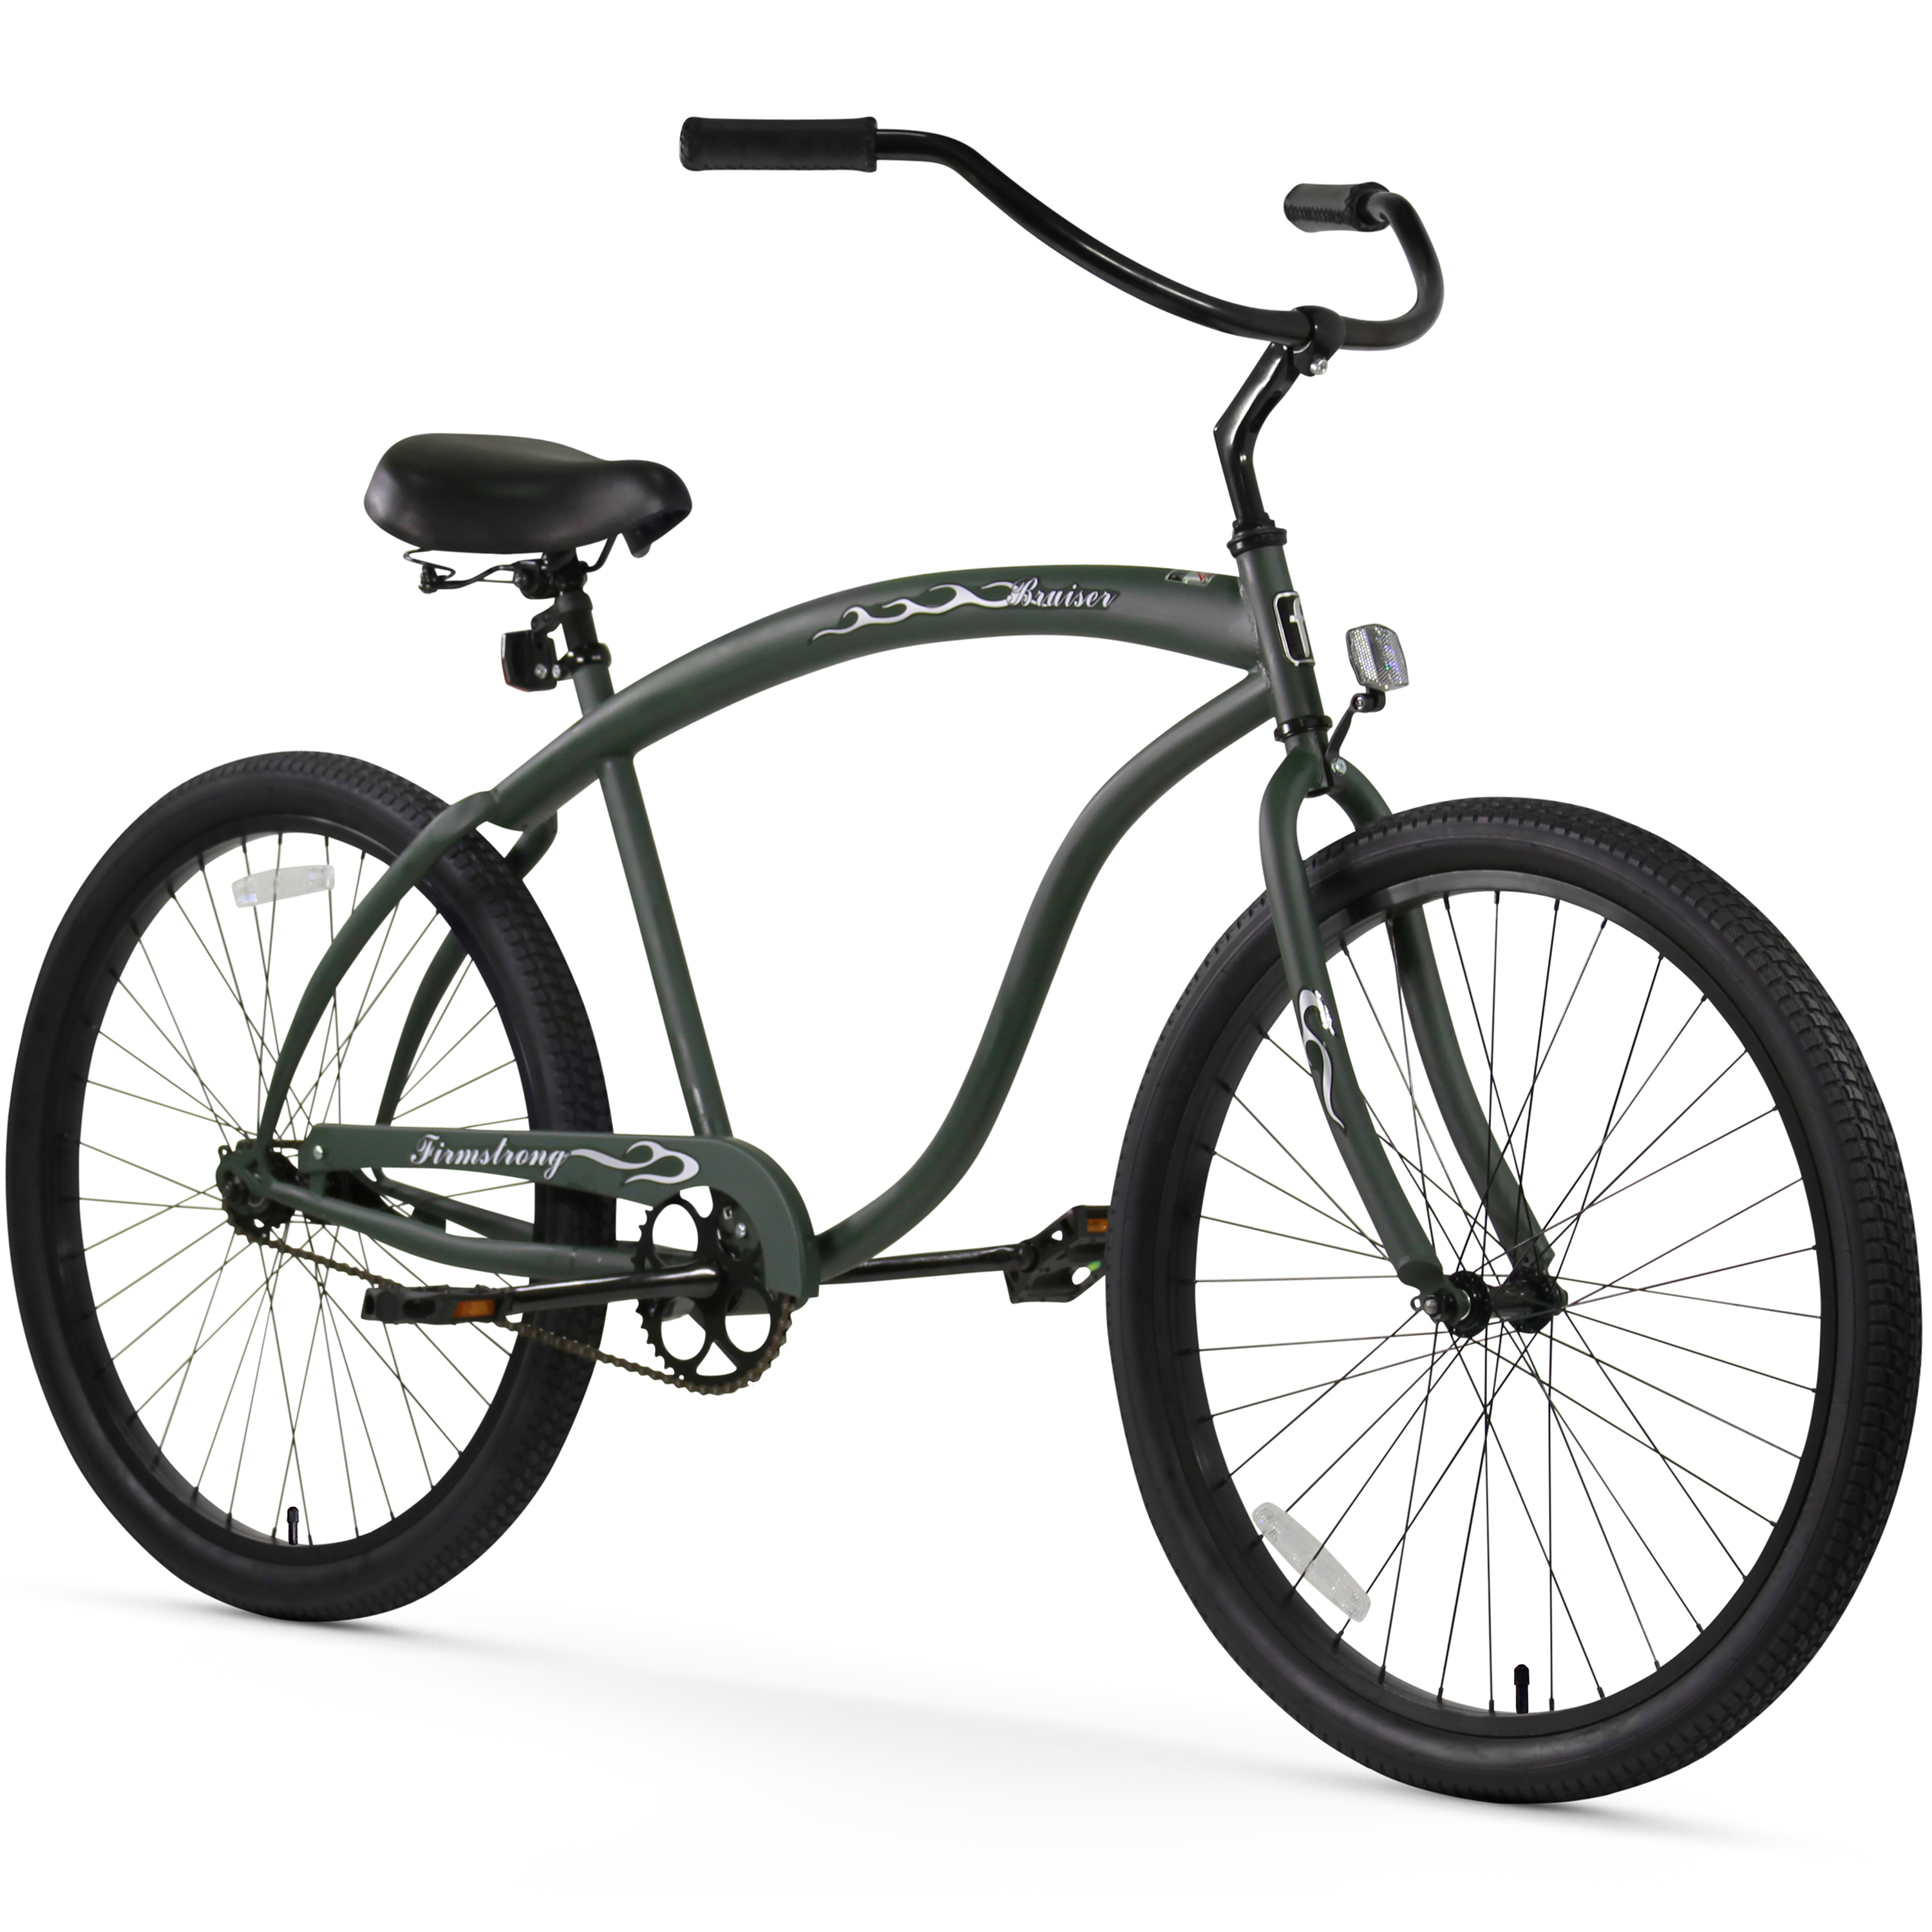 "Firmstrong Bruiser , 26"", Men's, Single Speed, Matte Army Green"